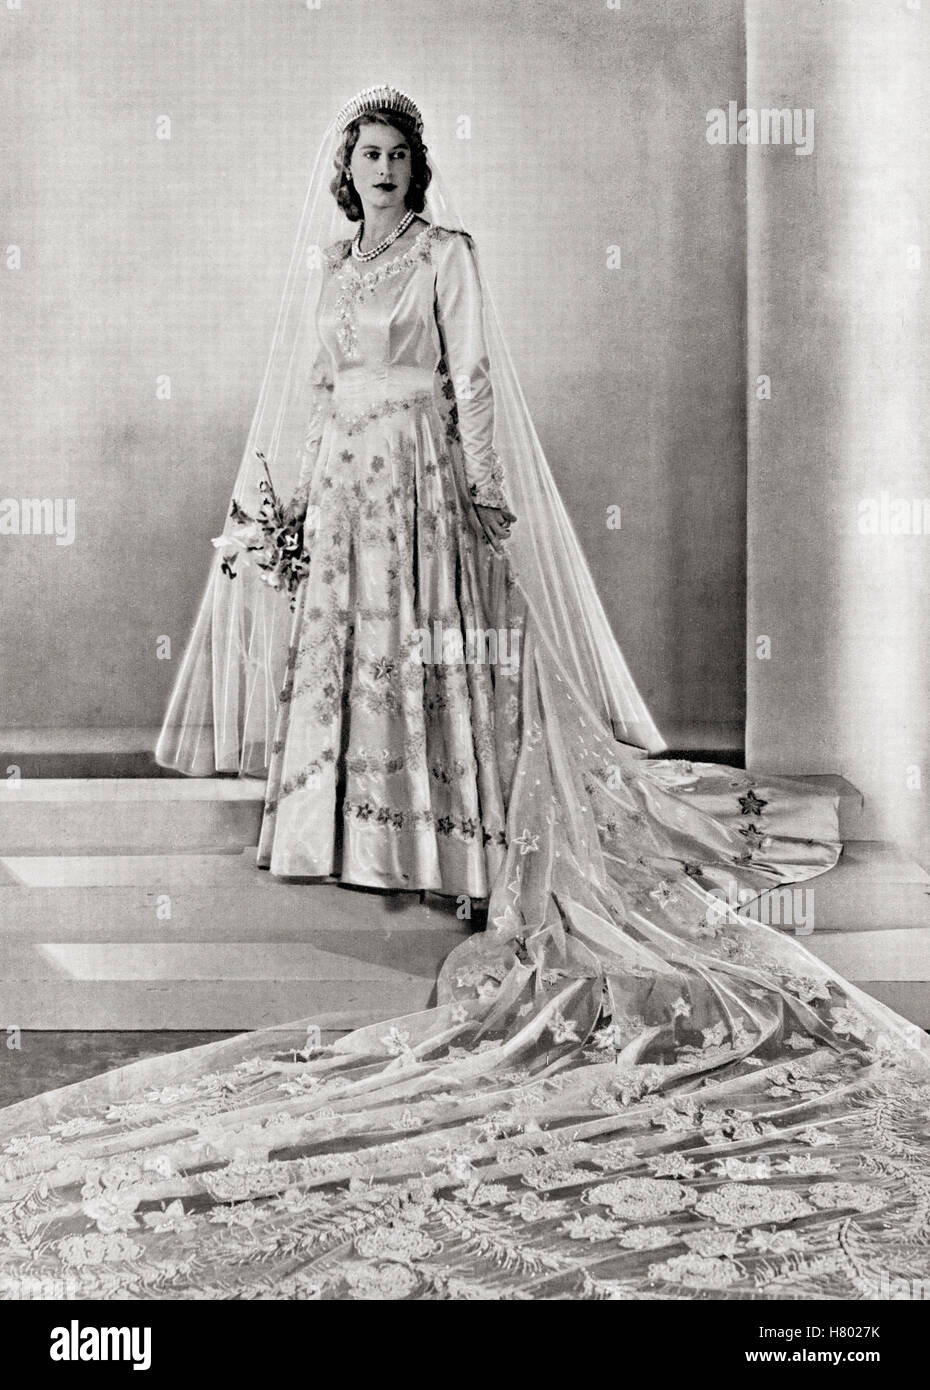 Queen Elizabeth Hochzeit Princess Elizabeth Future Queen Elizabeth Ii Born 1926 Seen